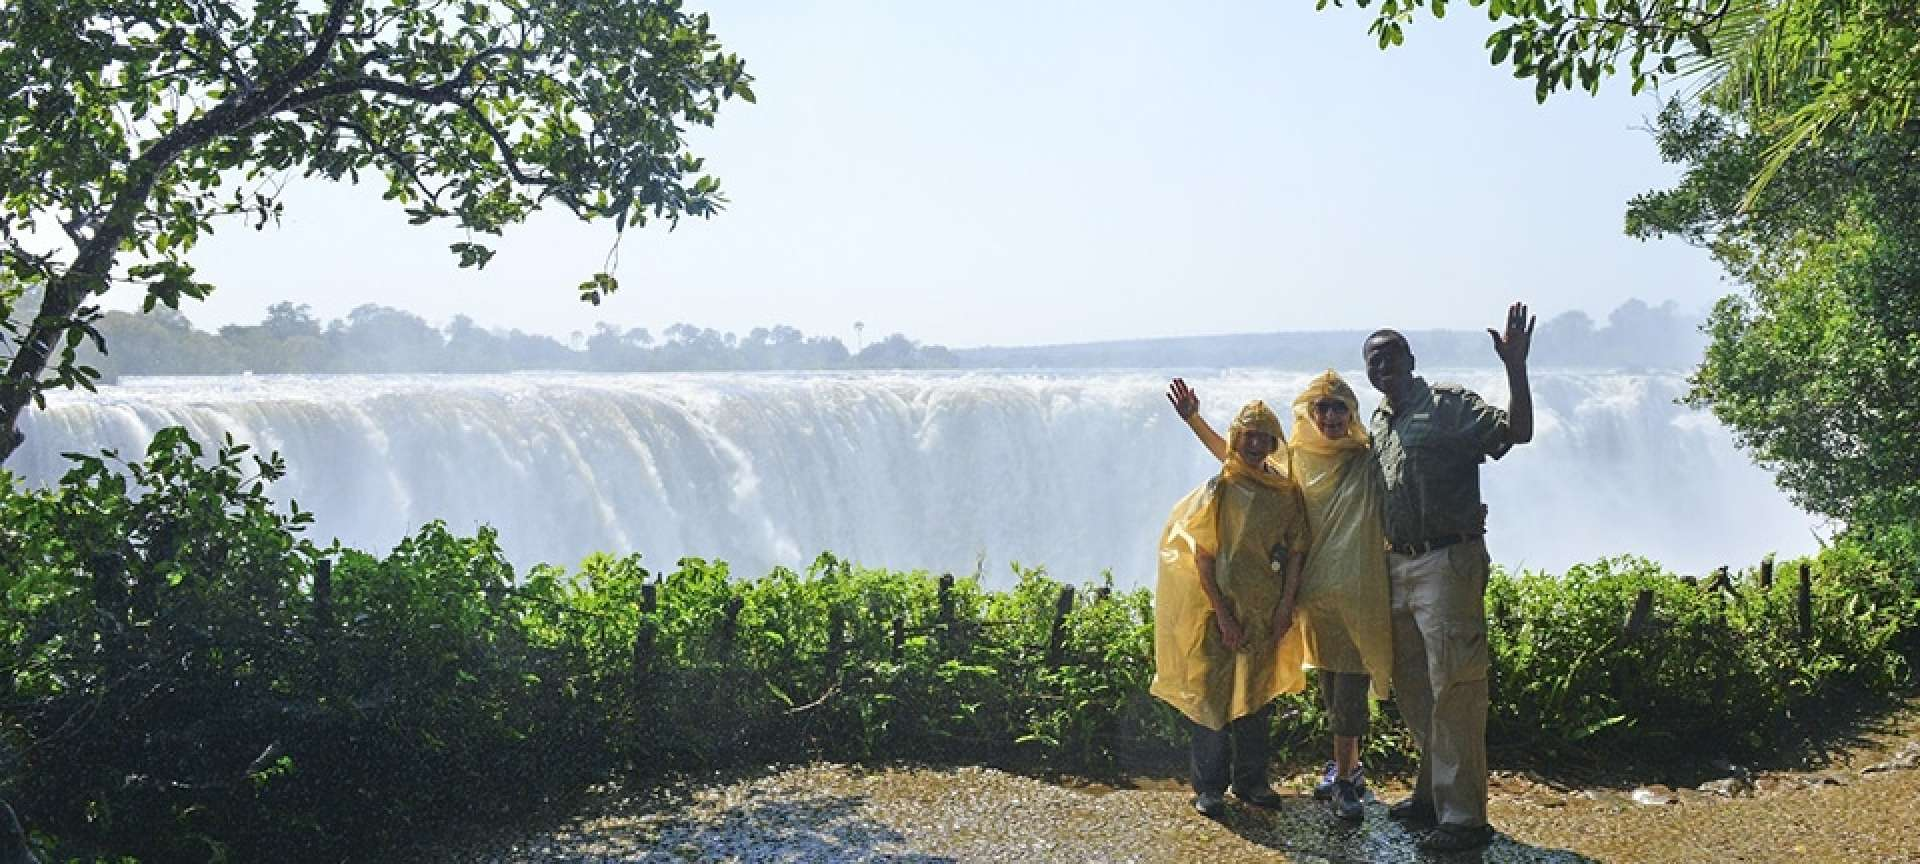 Young and old will appreciate the splendour of Victoria Falls